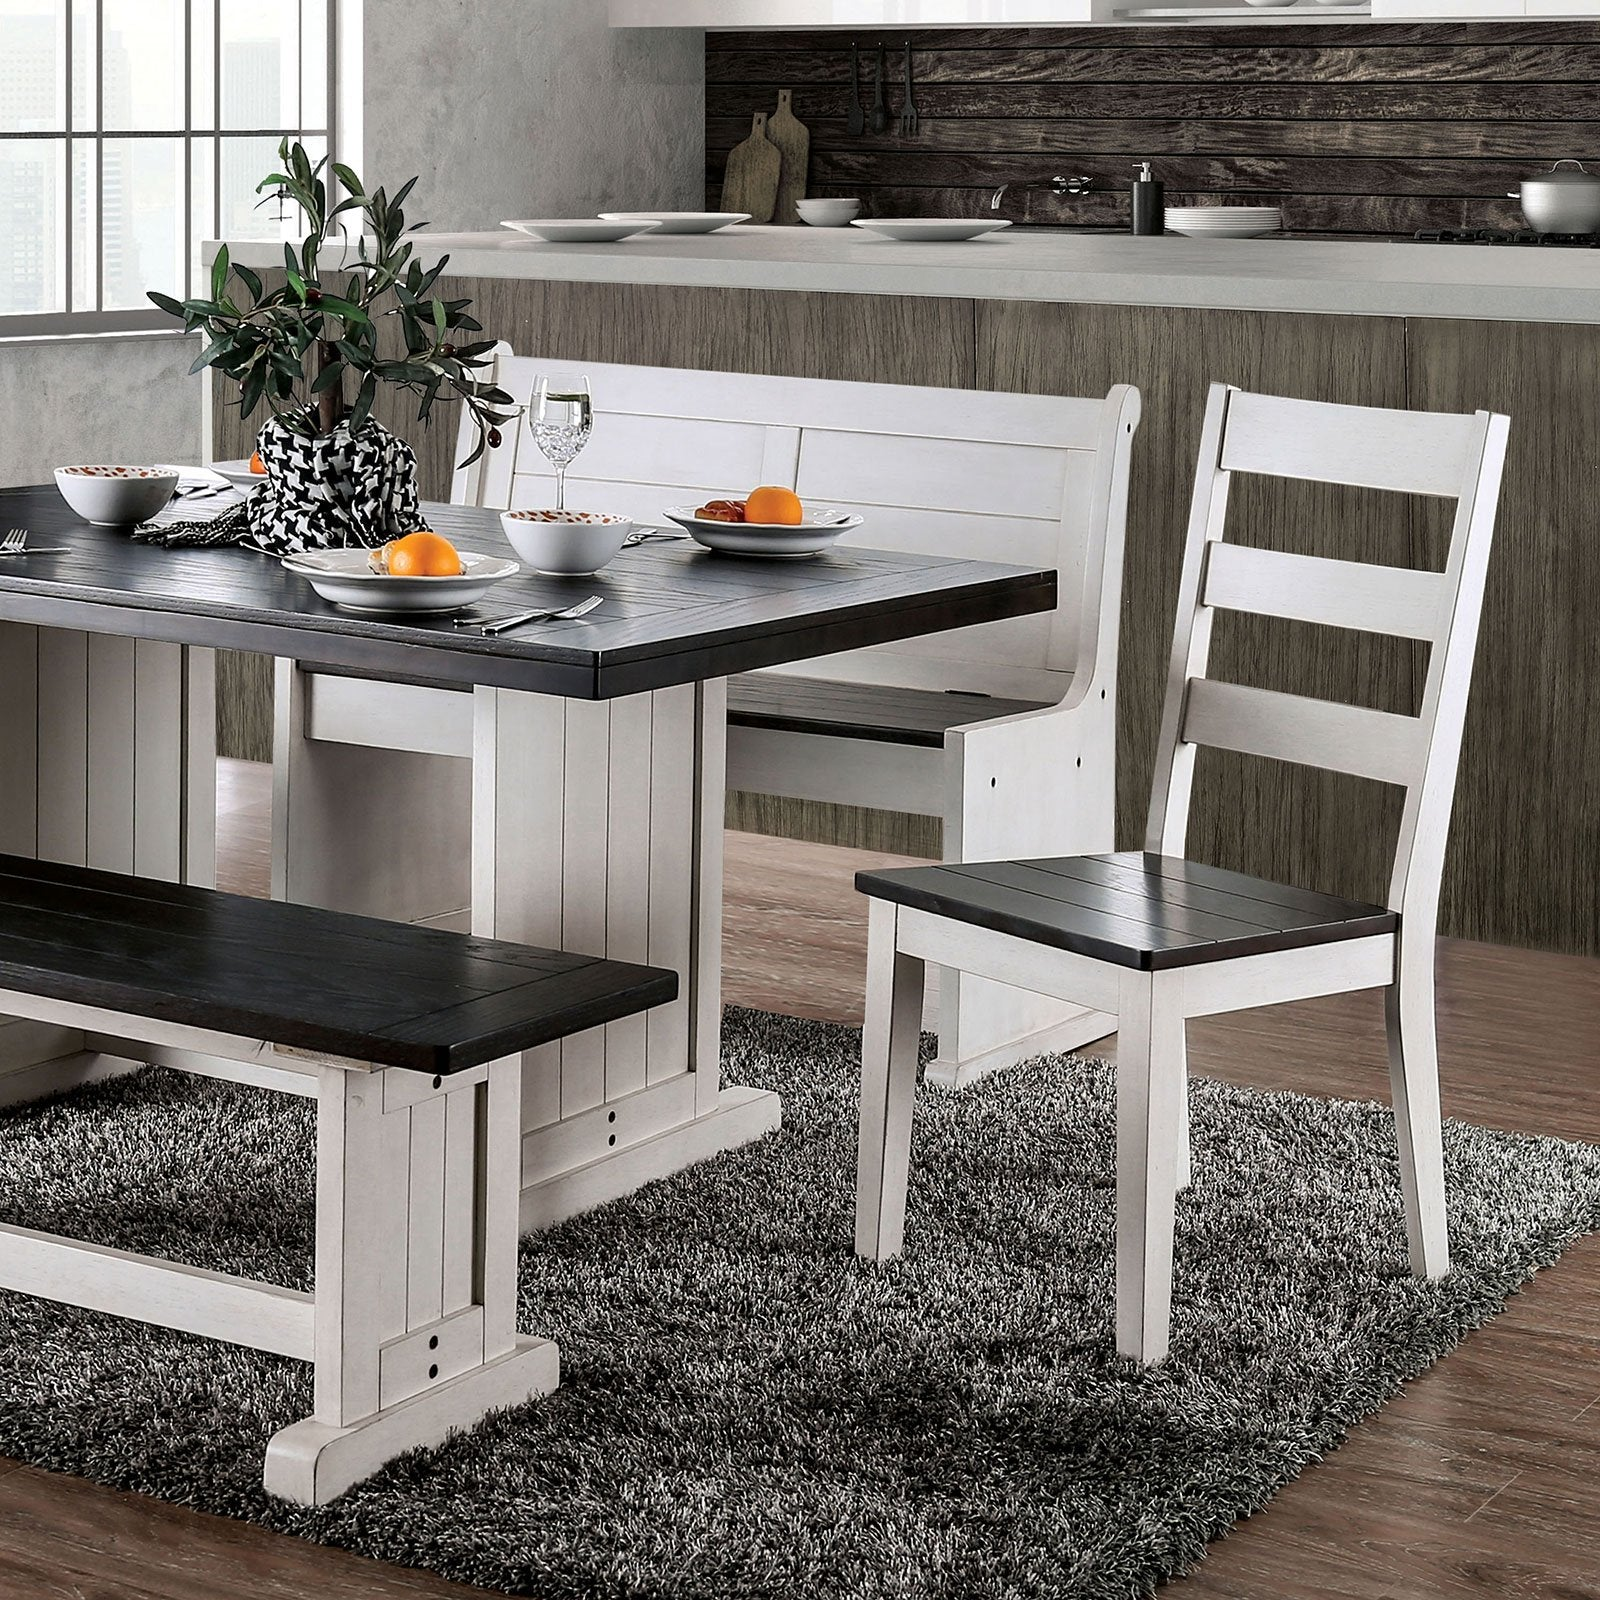 Nekoma Rustic 7 Pc. Dining Table Set - InteriorDesignsToGo.com